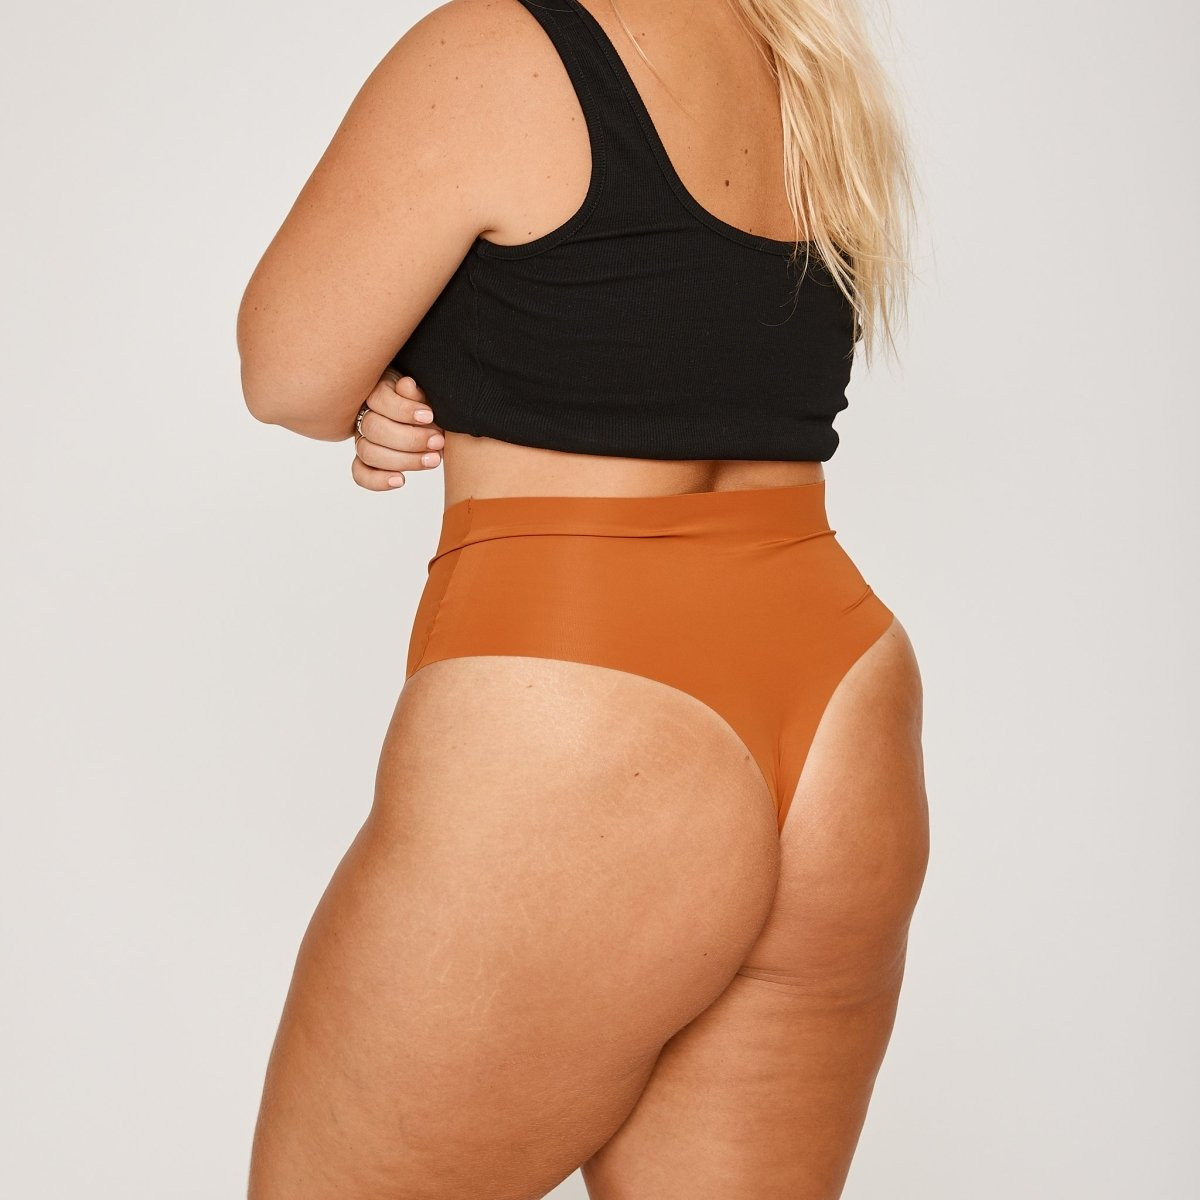 High-Rise Thong - Ochre - Peach Underwear